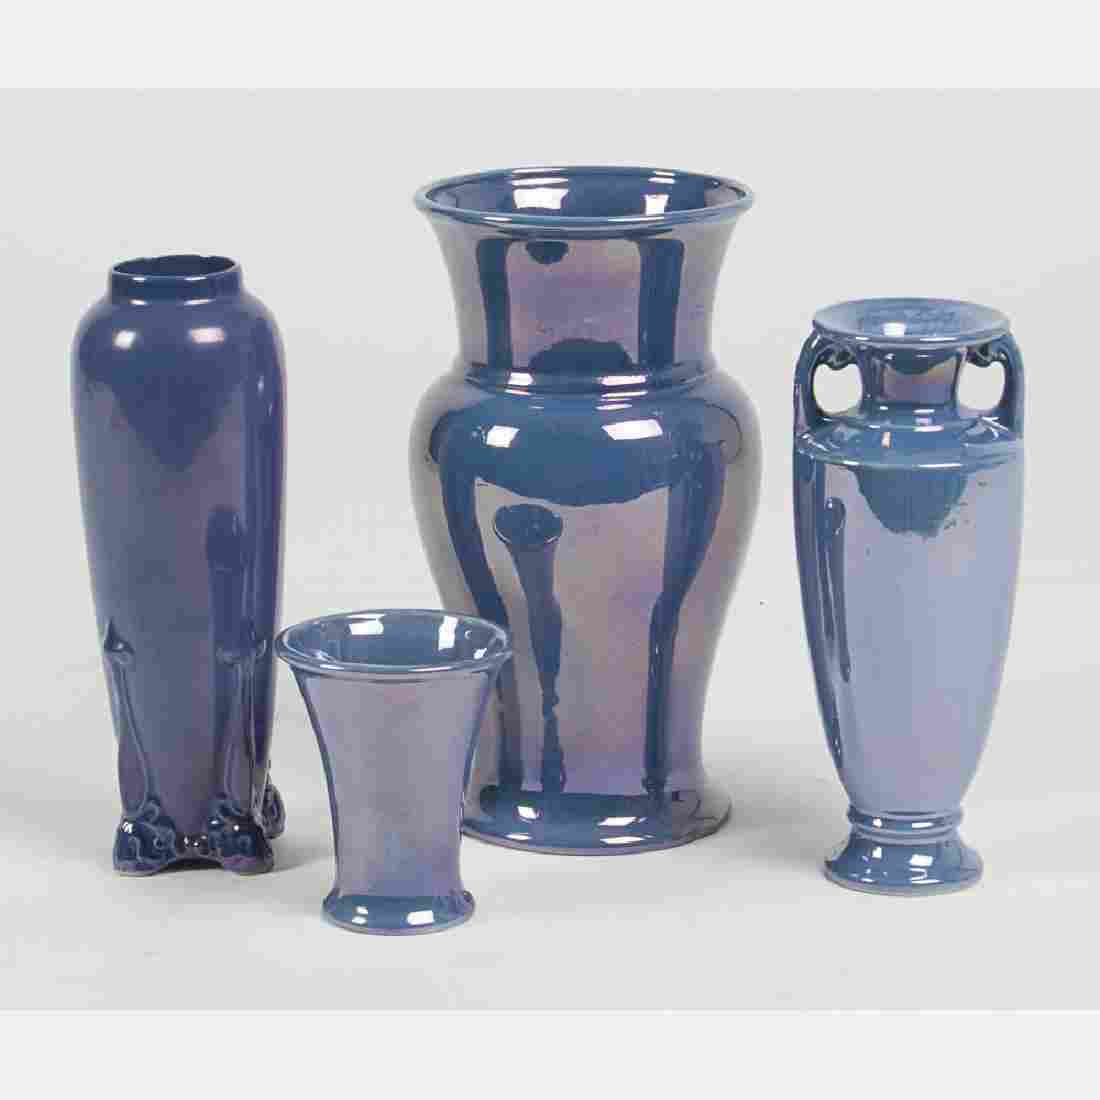 A Group of Four Cowan Pottery Vases, 20th Century,